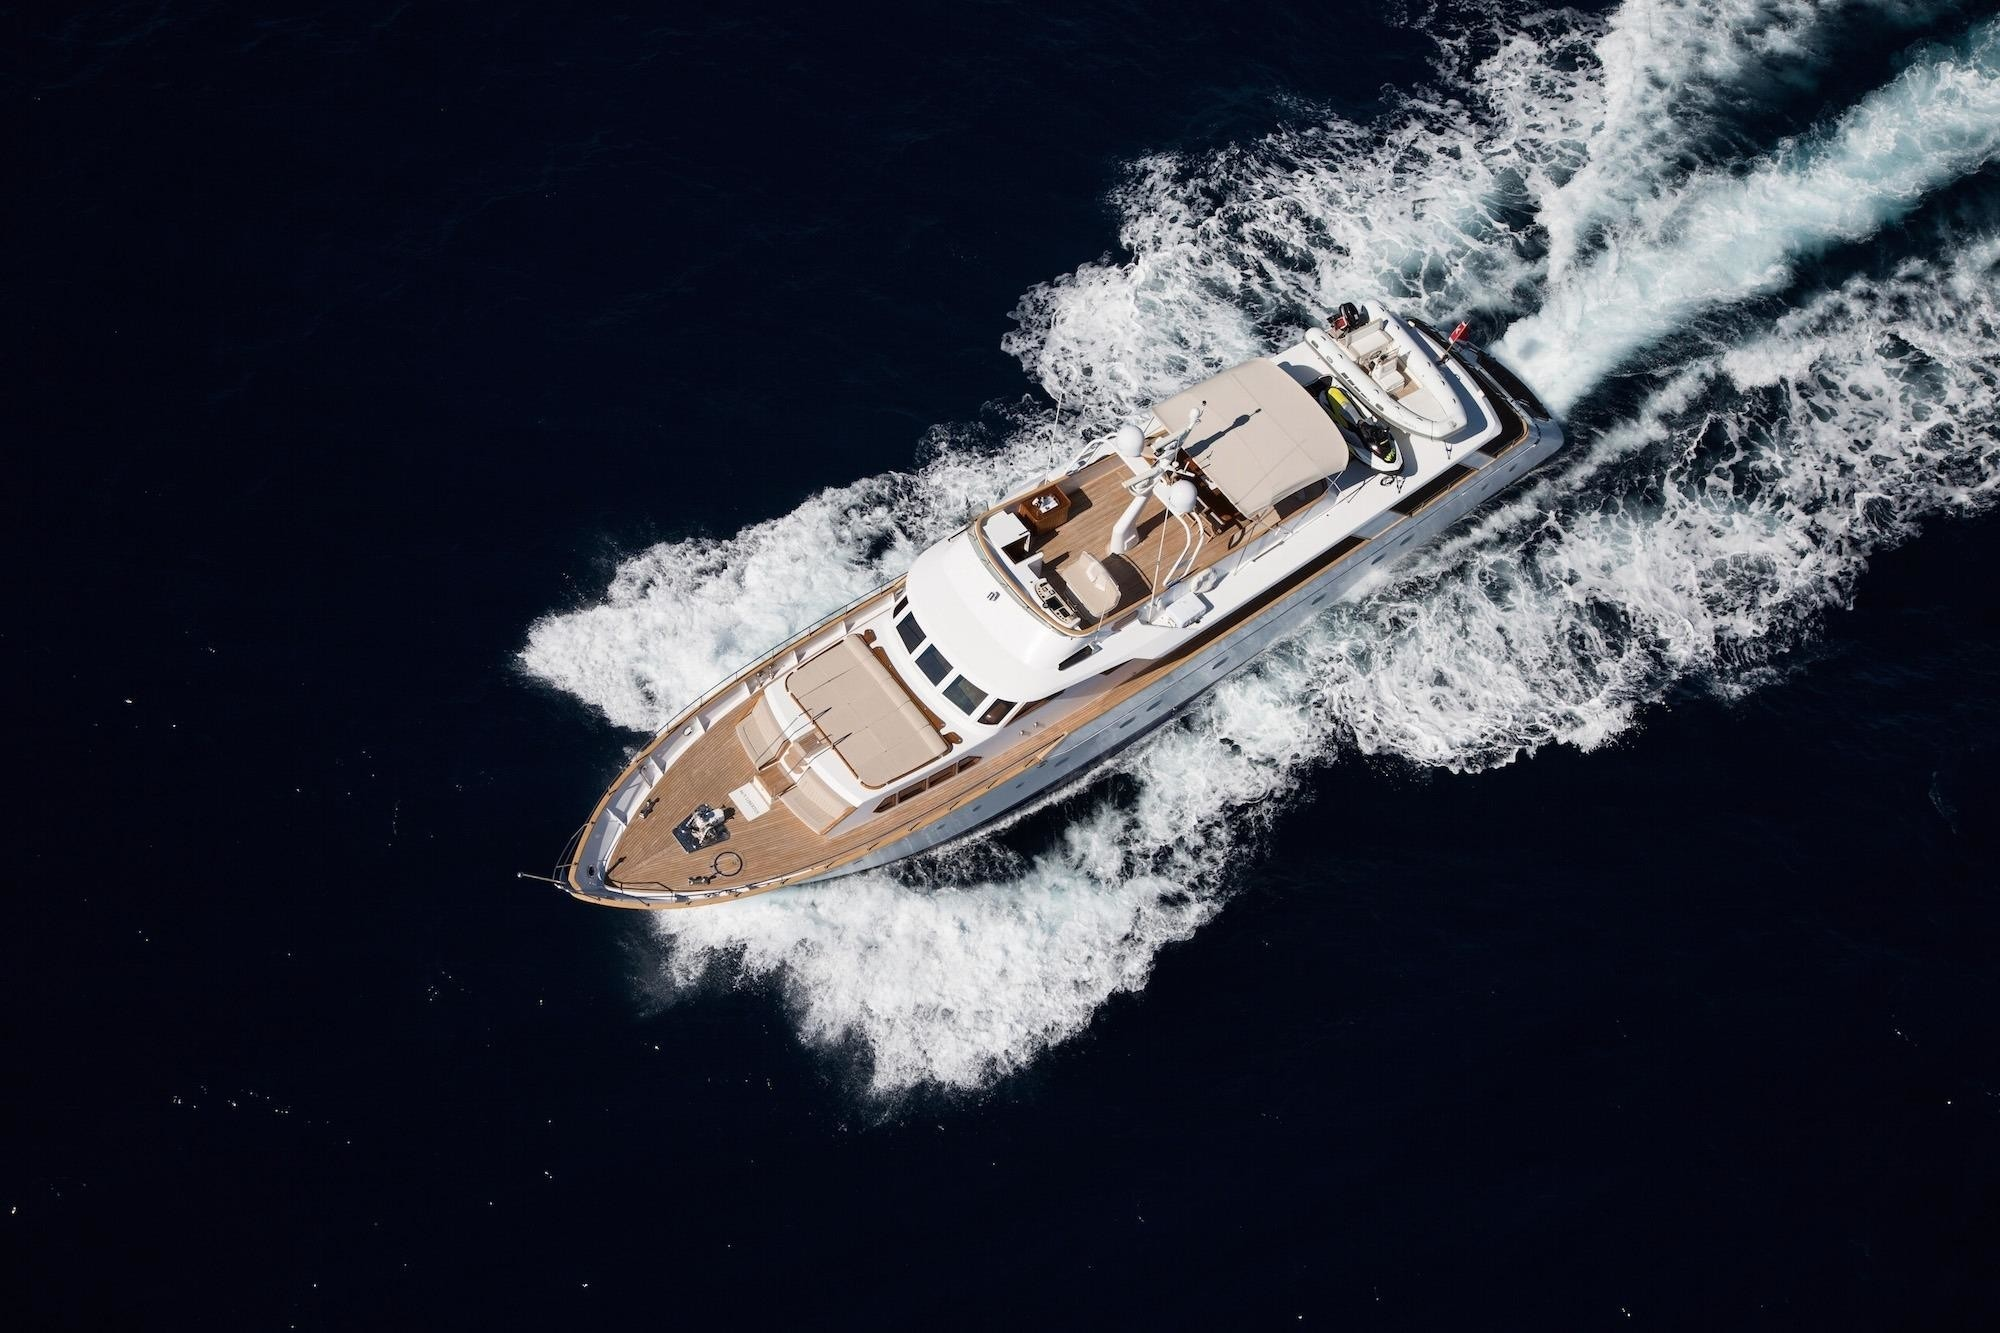 The 29m Yacht LIBERTUS